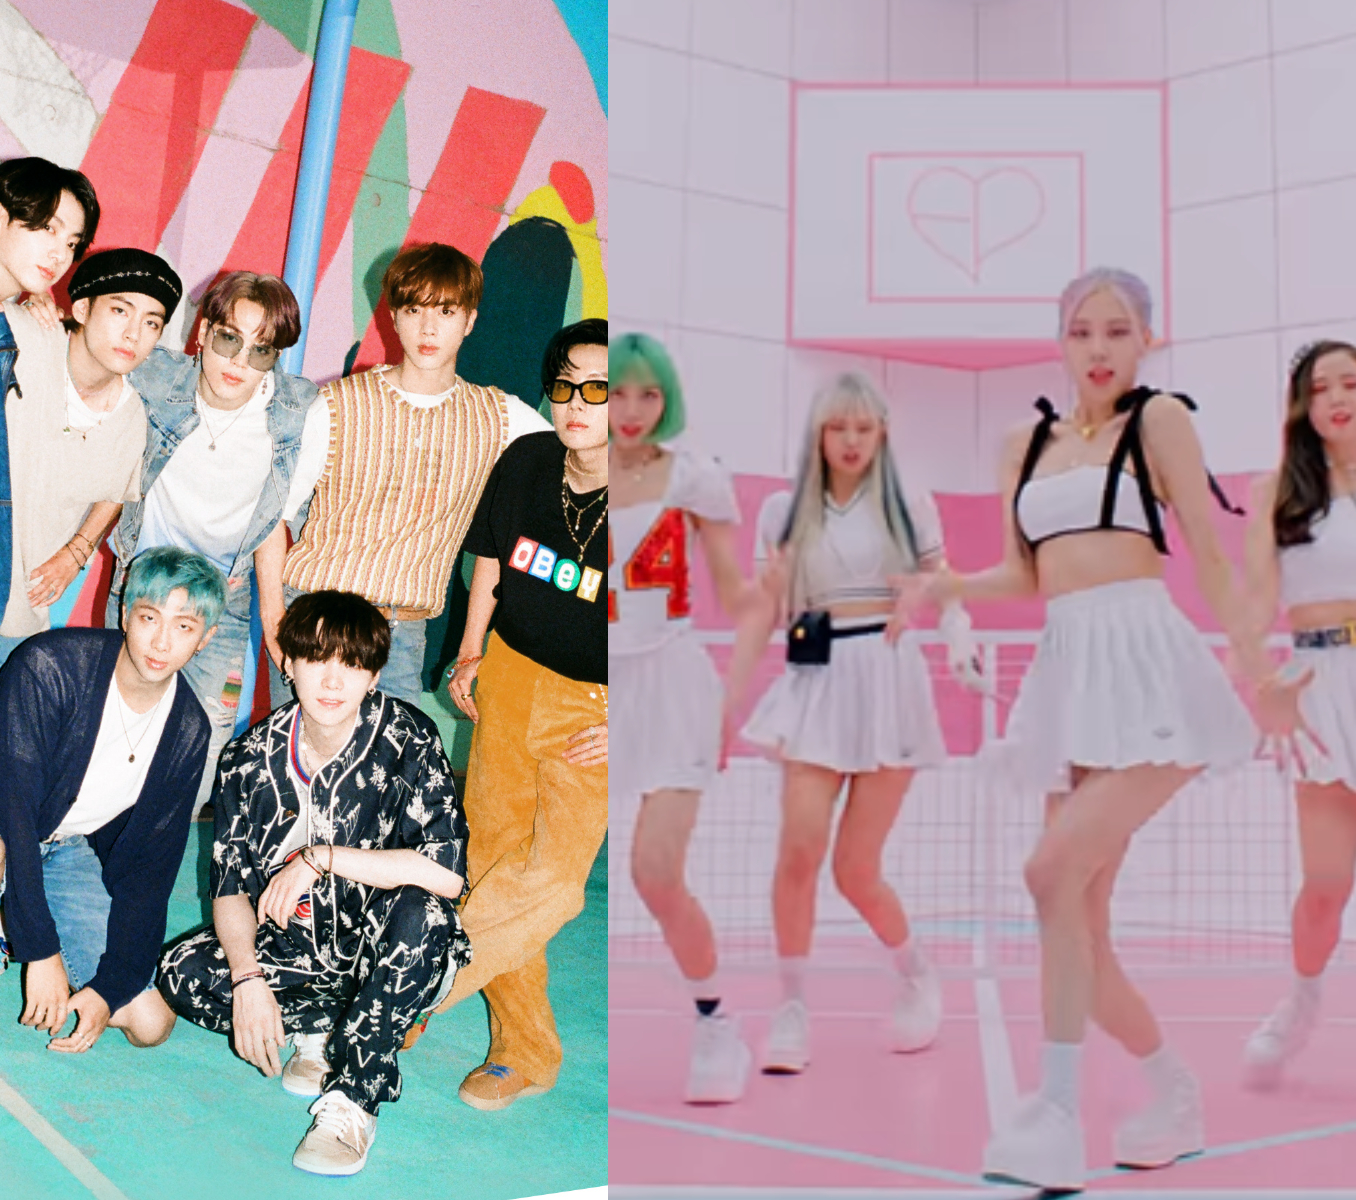 Bts Dynamite Or Blackpink Ft Selena Gomez S Ice Cream Which August Single Is Stuck In Your Head Vote Now Pinkvilla